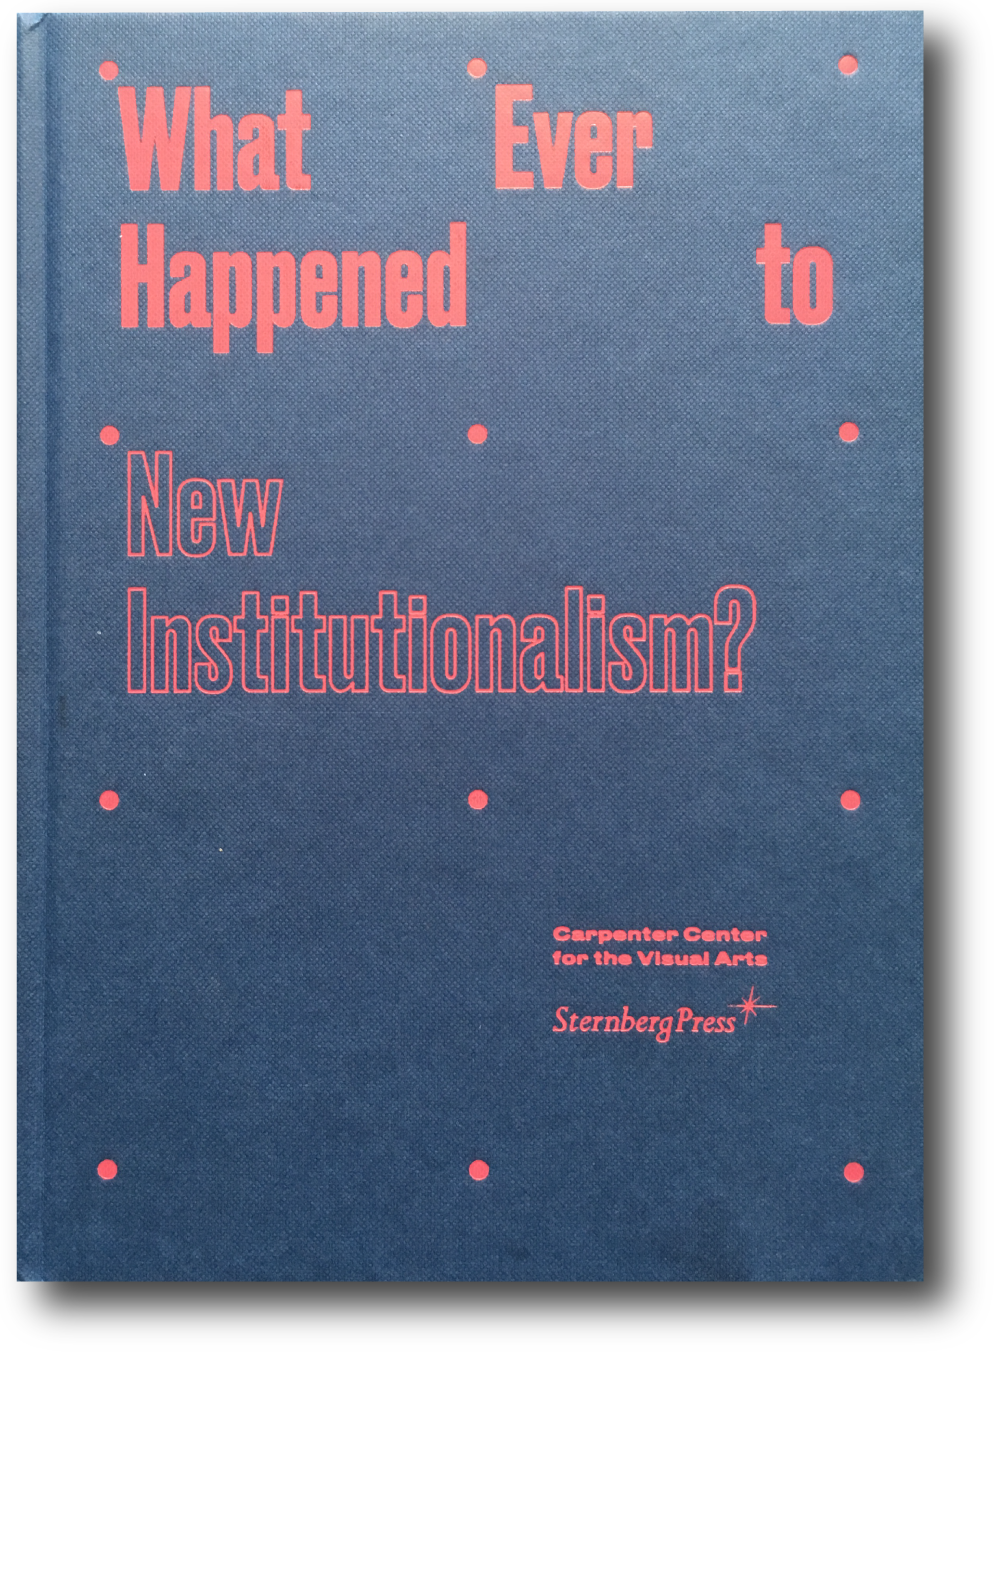 BOC-Publication-whatever-happened-to-new-institutionalism-cover.png